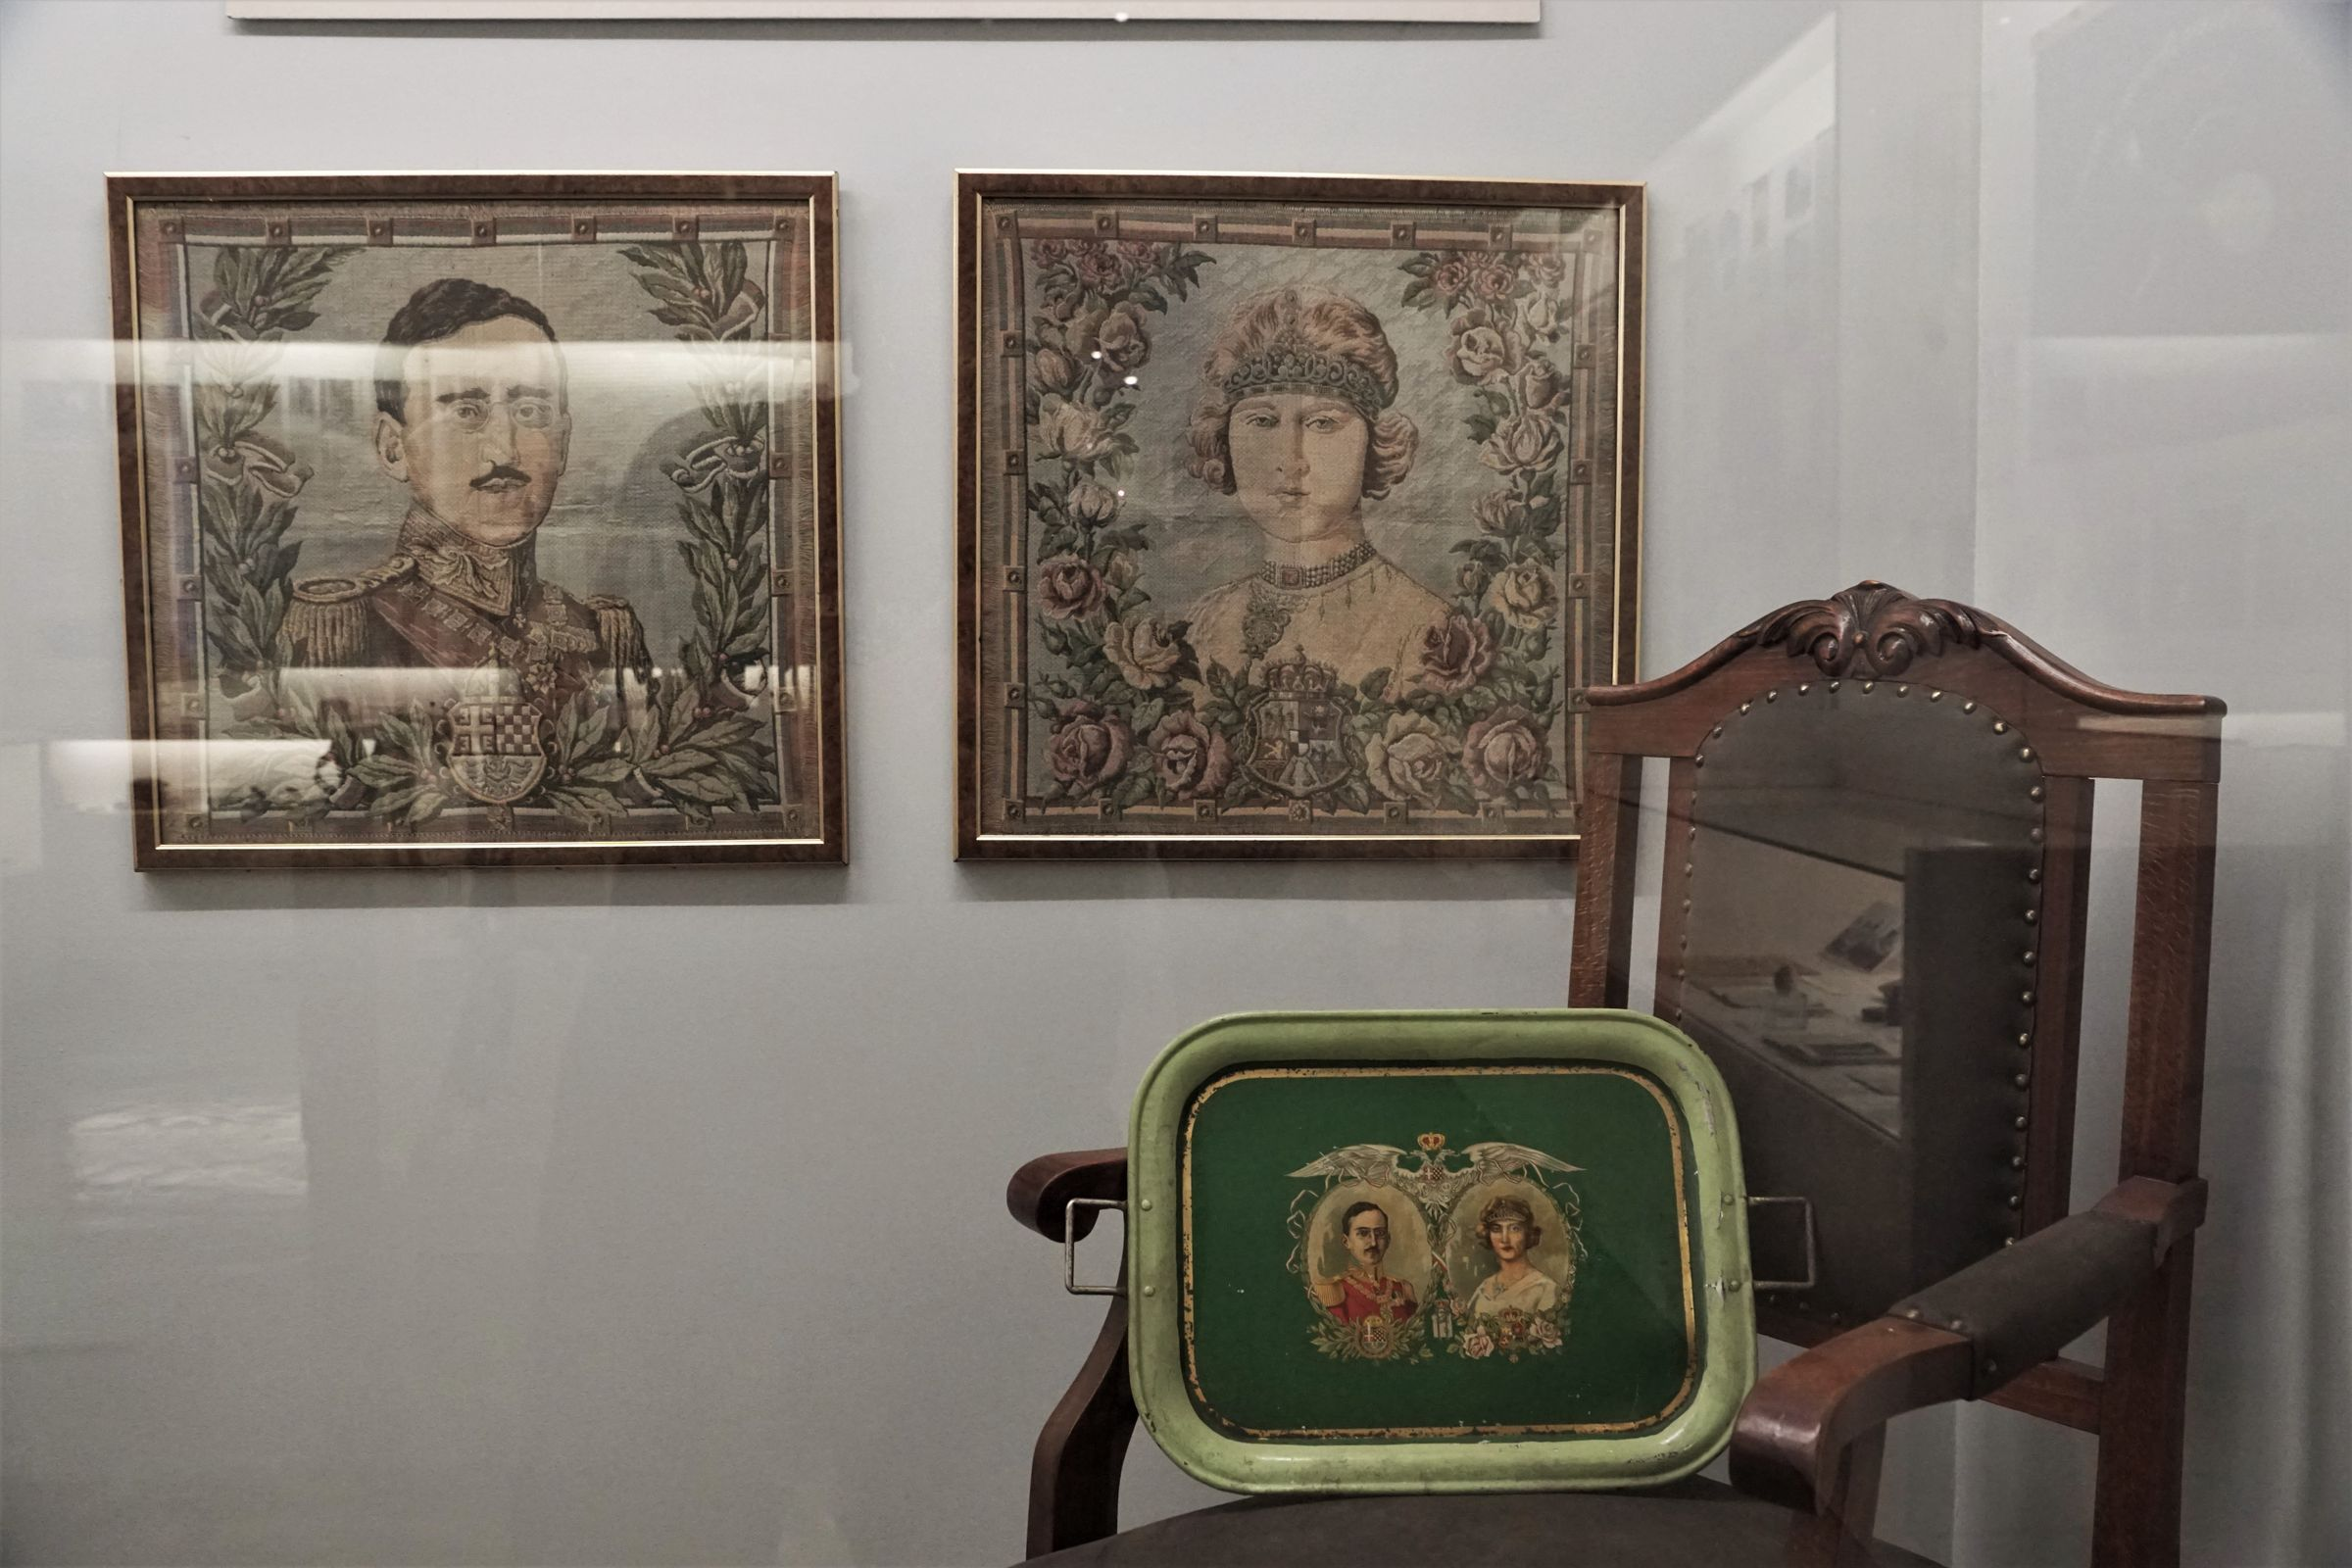 Items with depictions of King Alexander I Karađorđević and Queen Maria